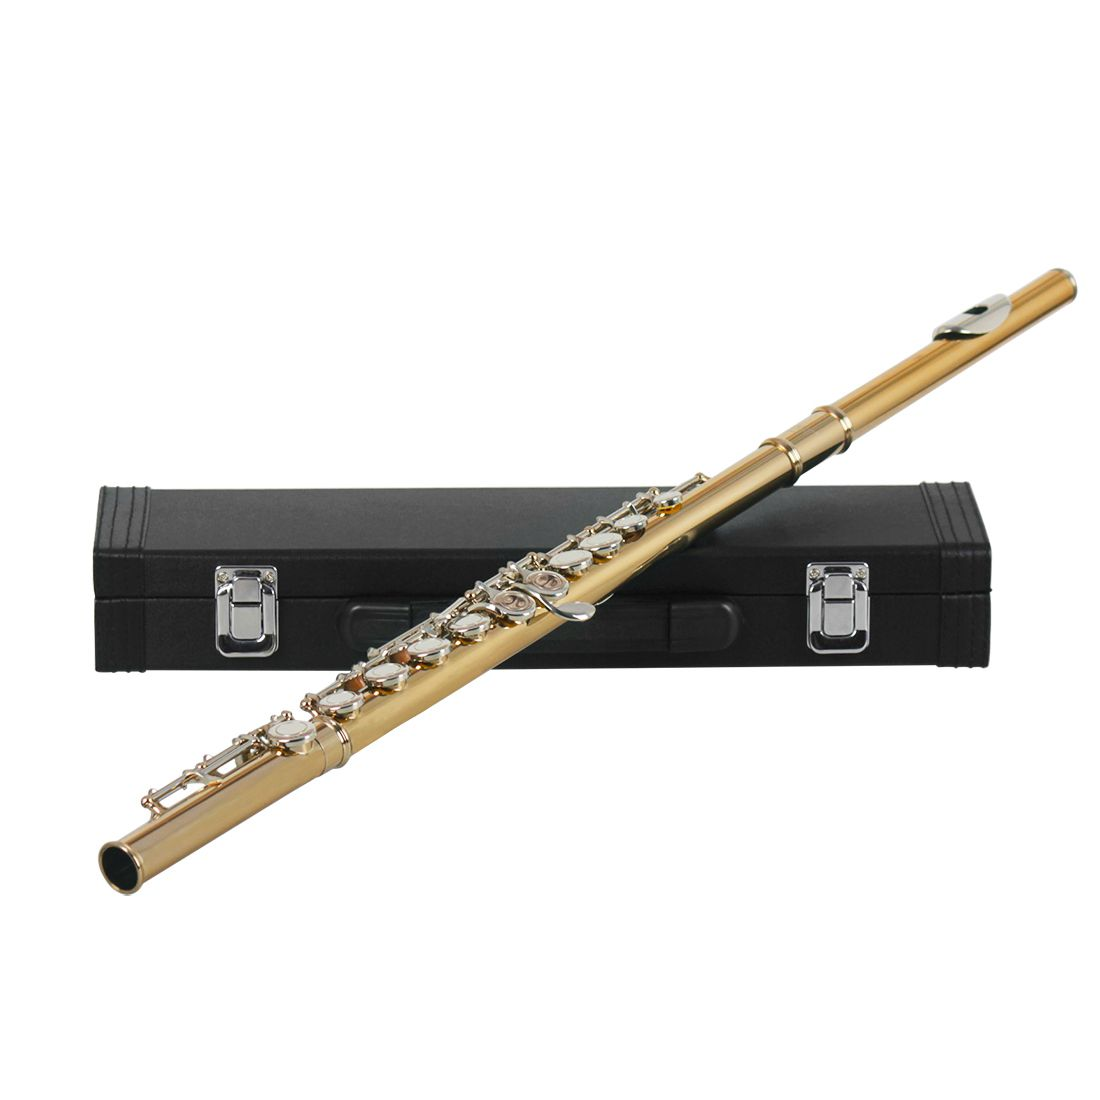 SEWS Western Concert Flute 16 Holes C Key Cupronickel Musical Instrument with Cleaning Cloth Stick Gloves Screwdriver Gold